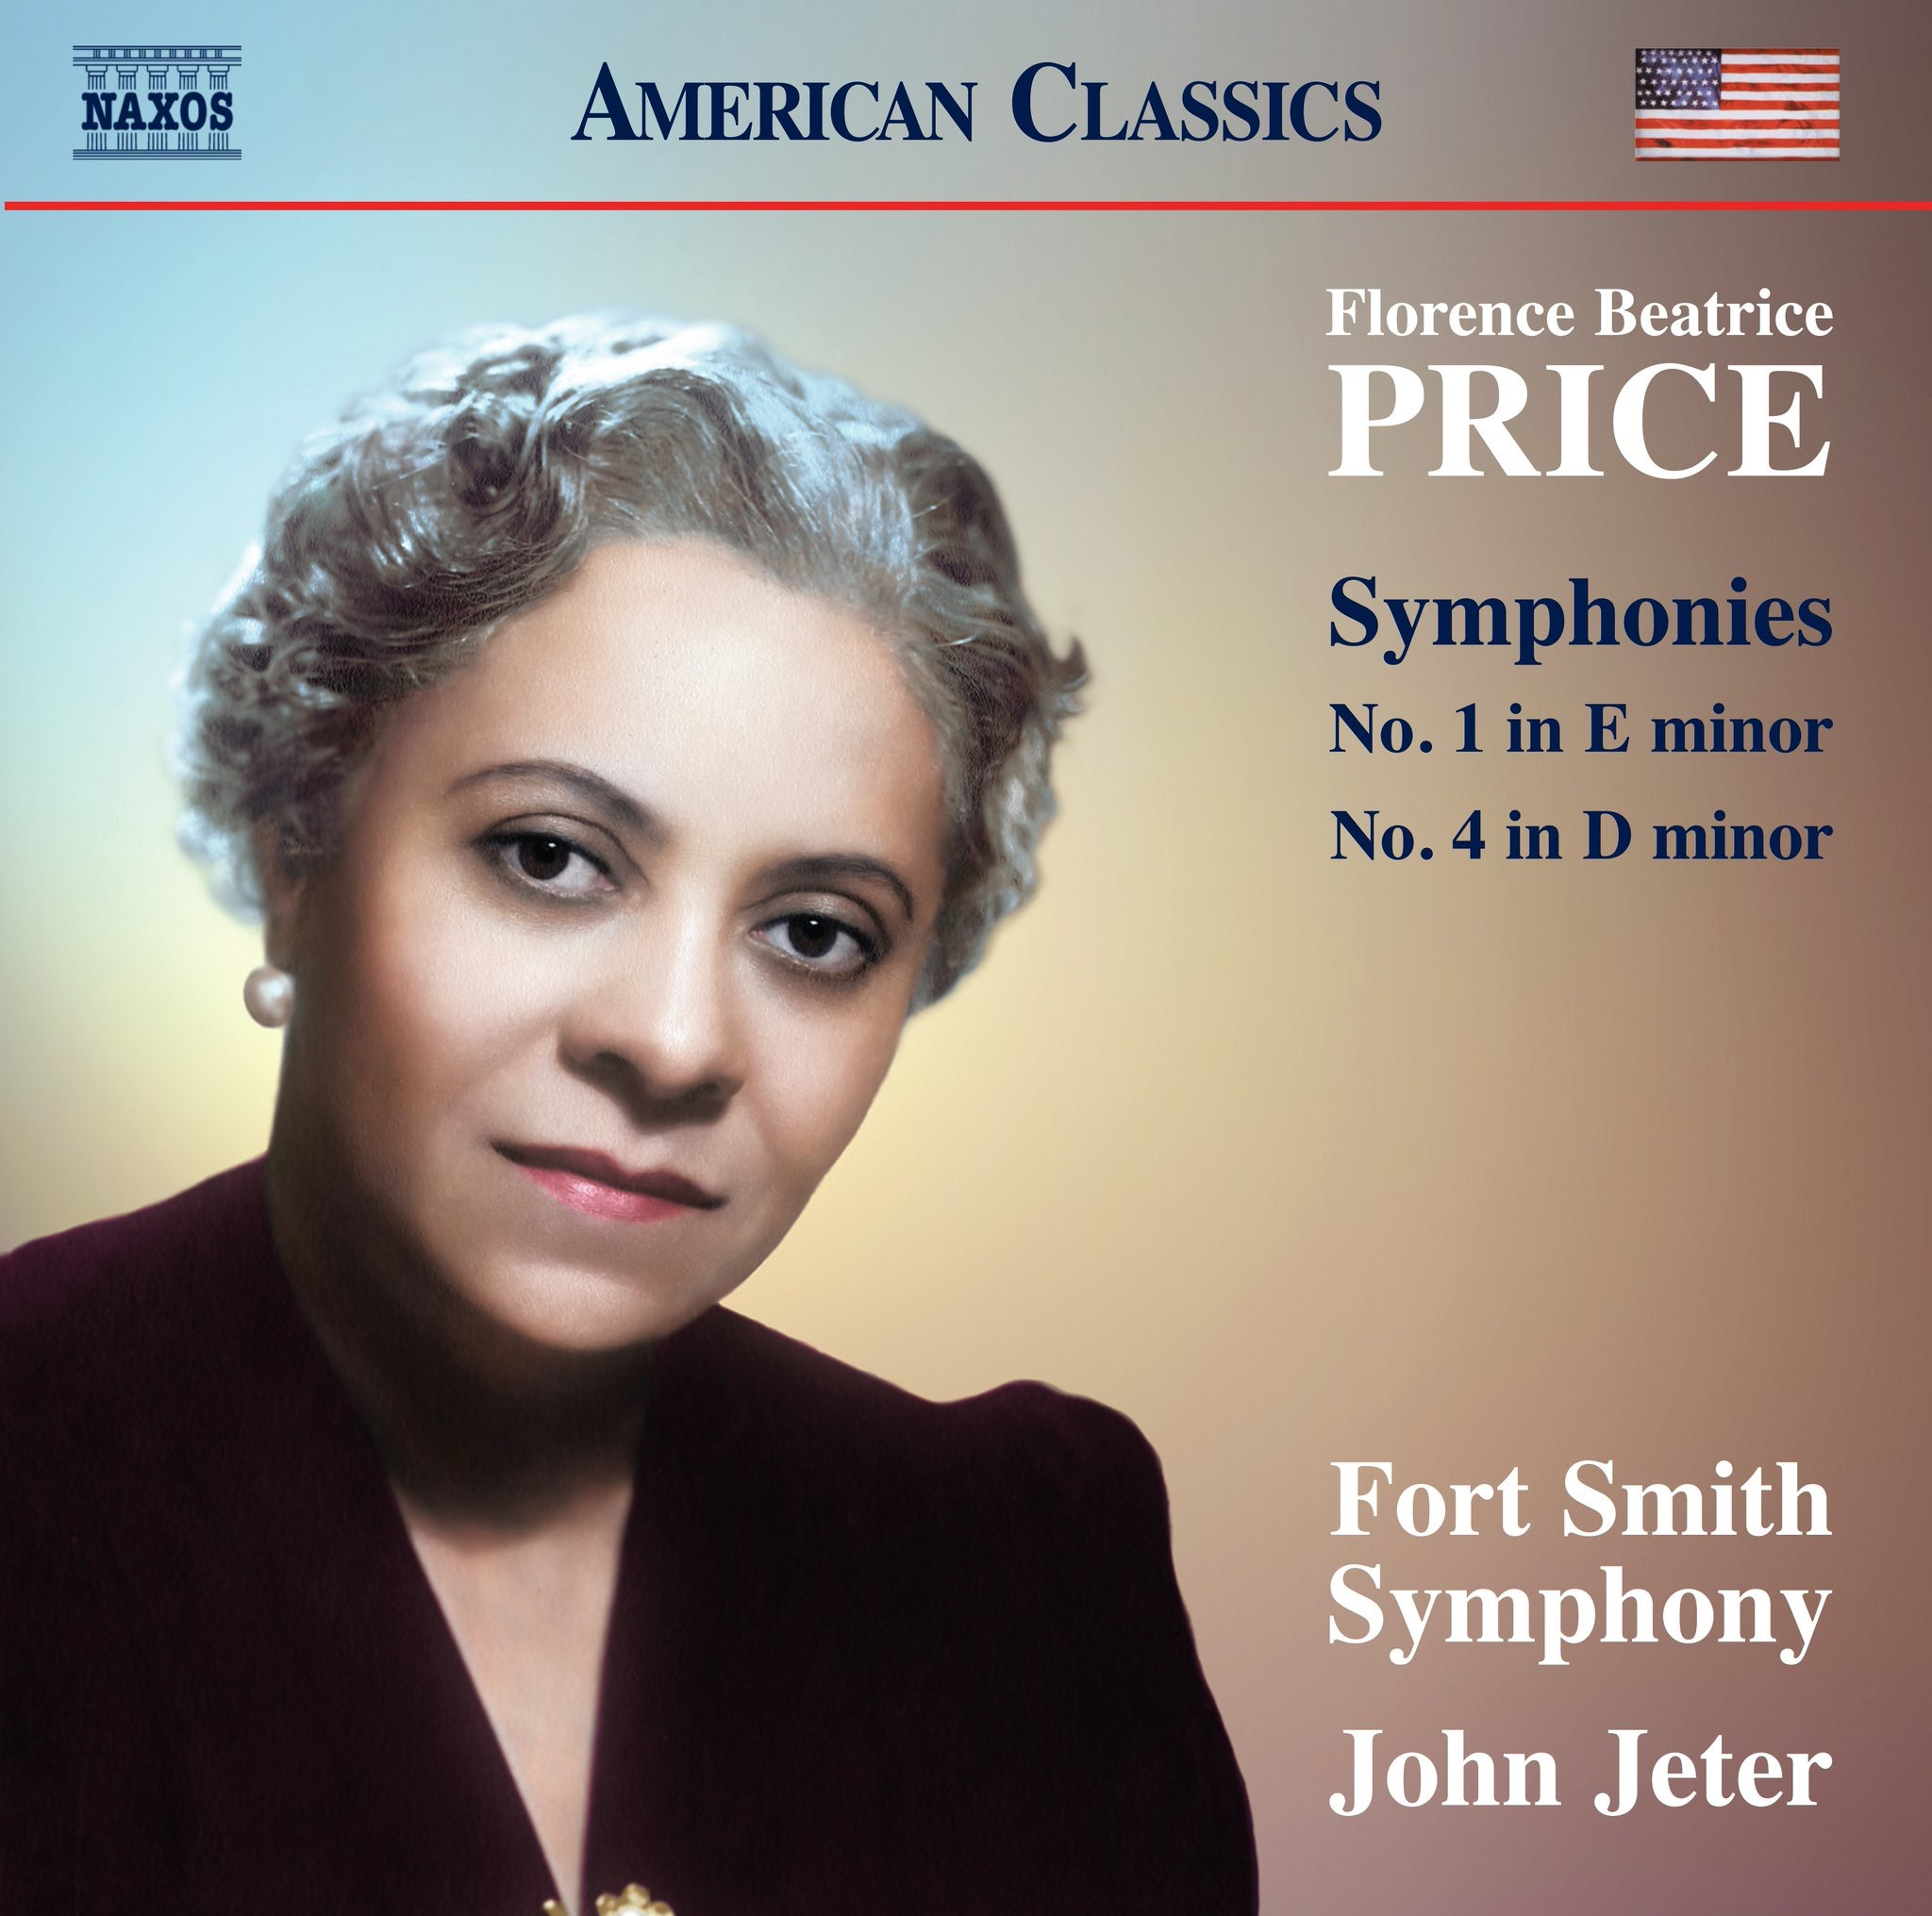 Cover art for the upcoming recording of Price's 1st and 4th Symphonies.